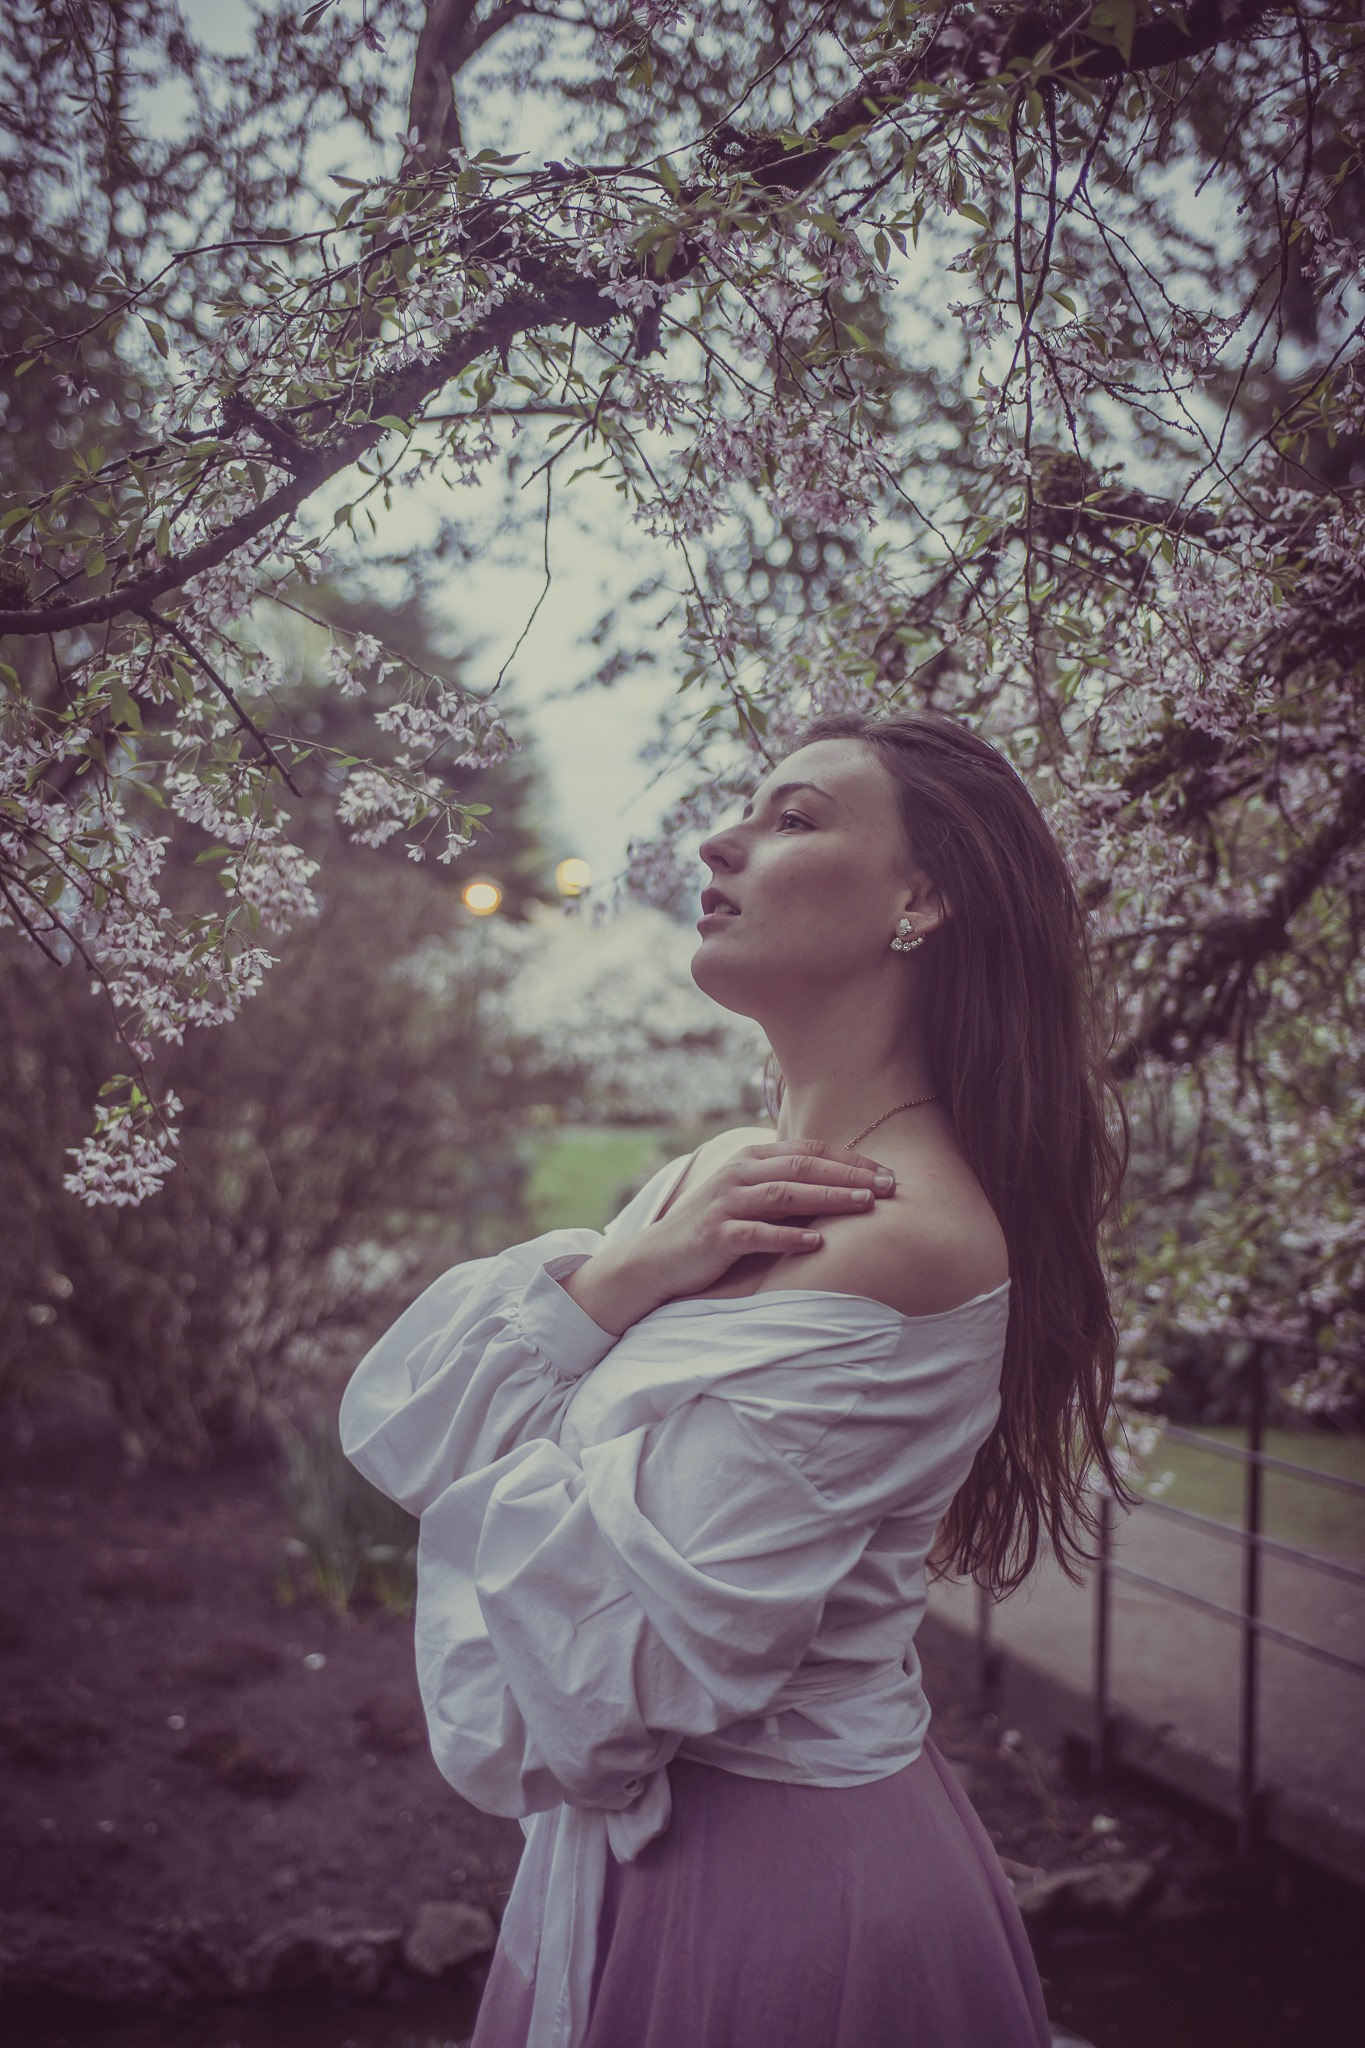 May be an image of 1 person, flower, tree and outdoors